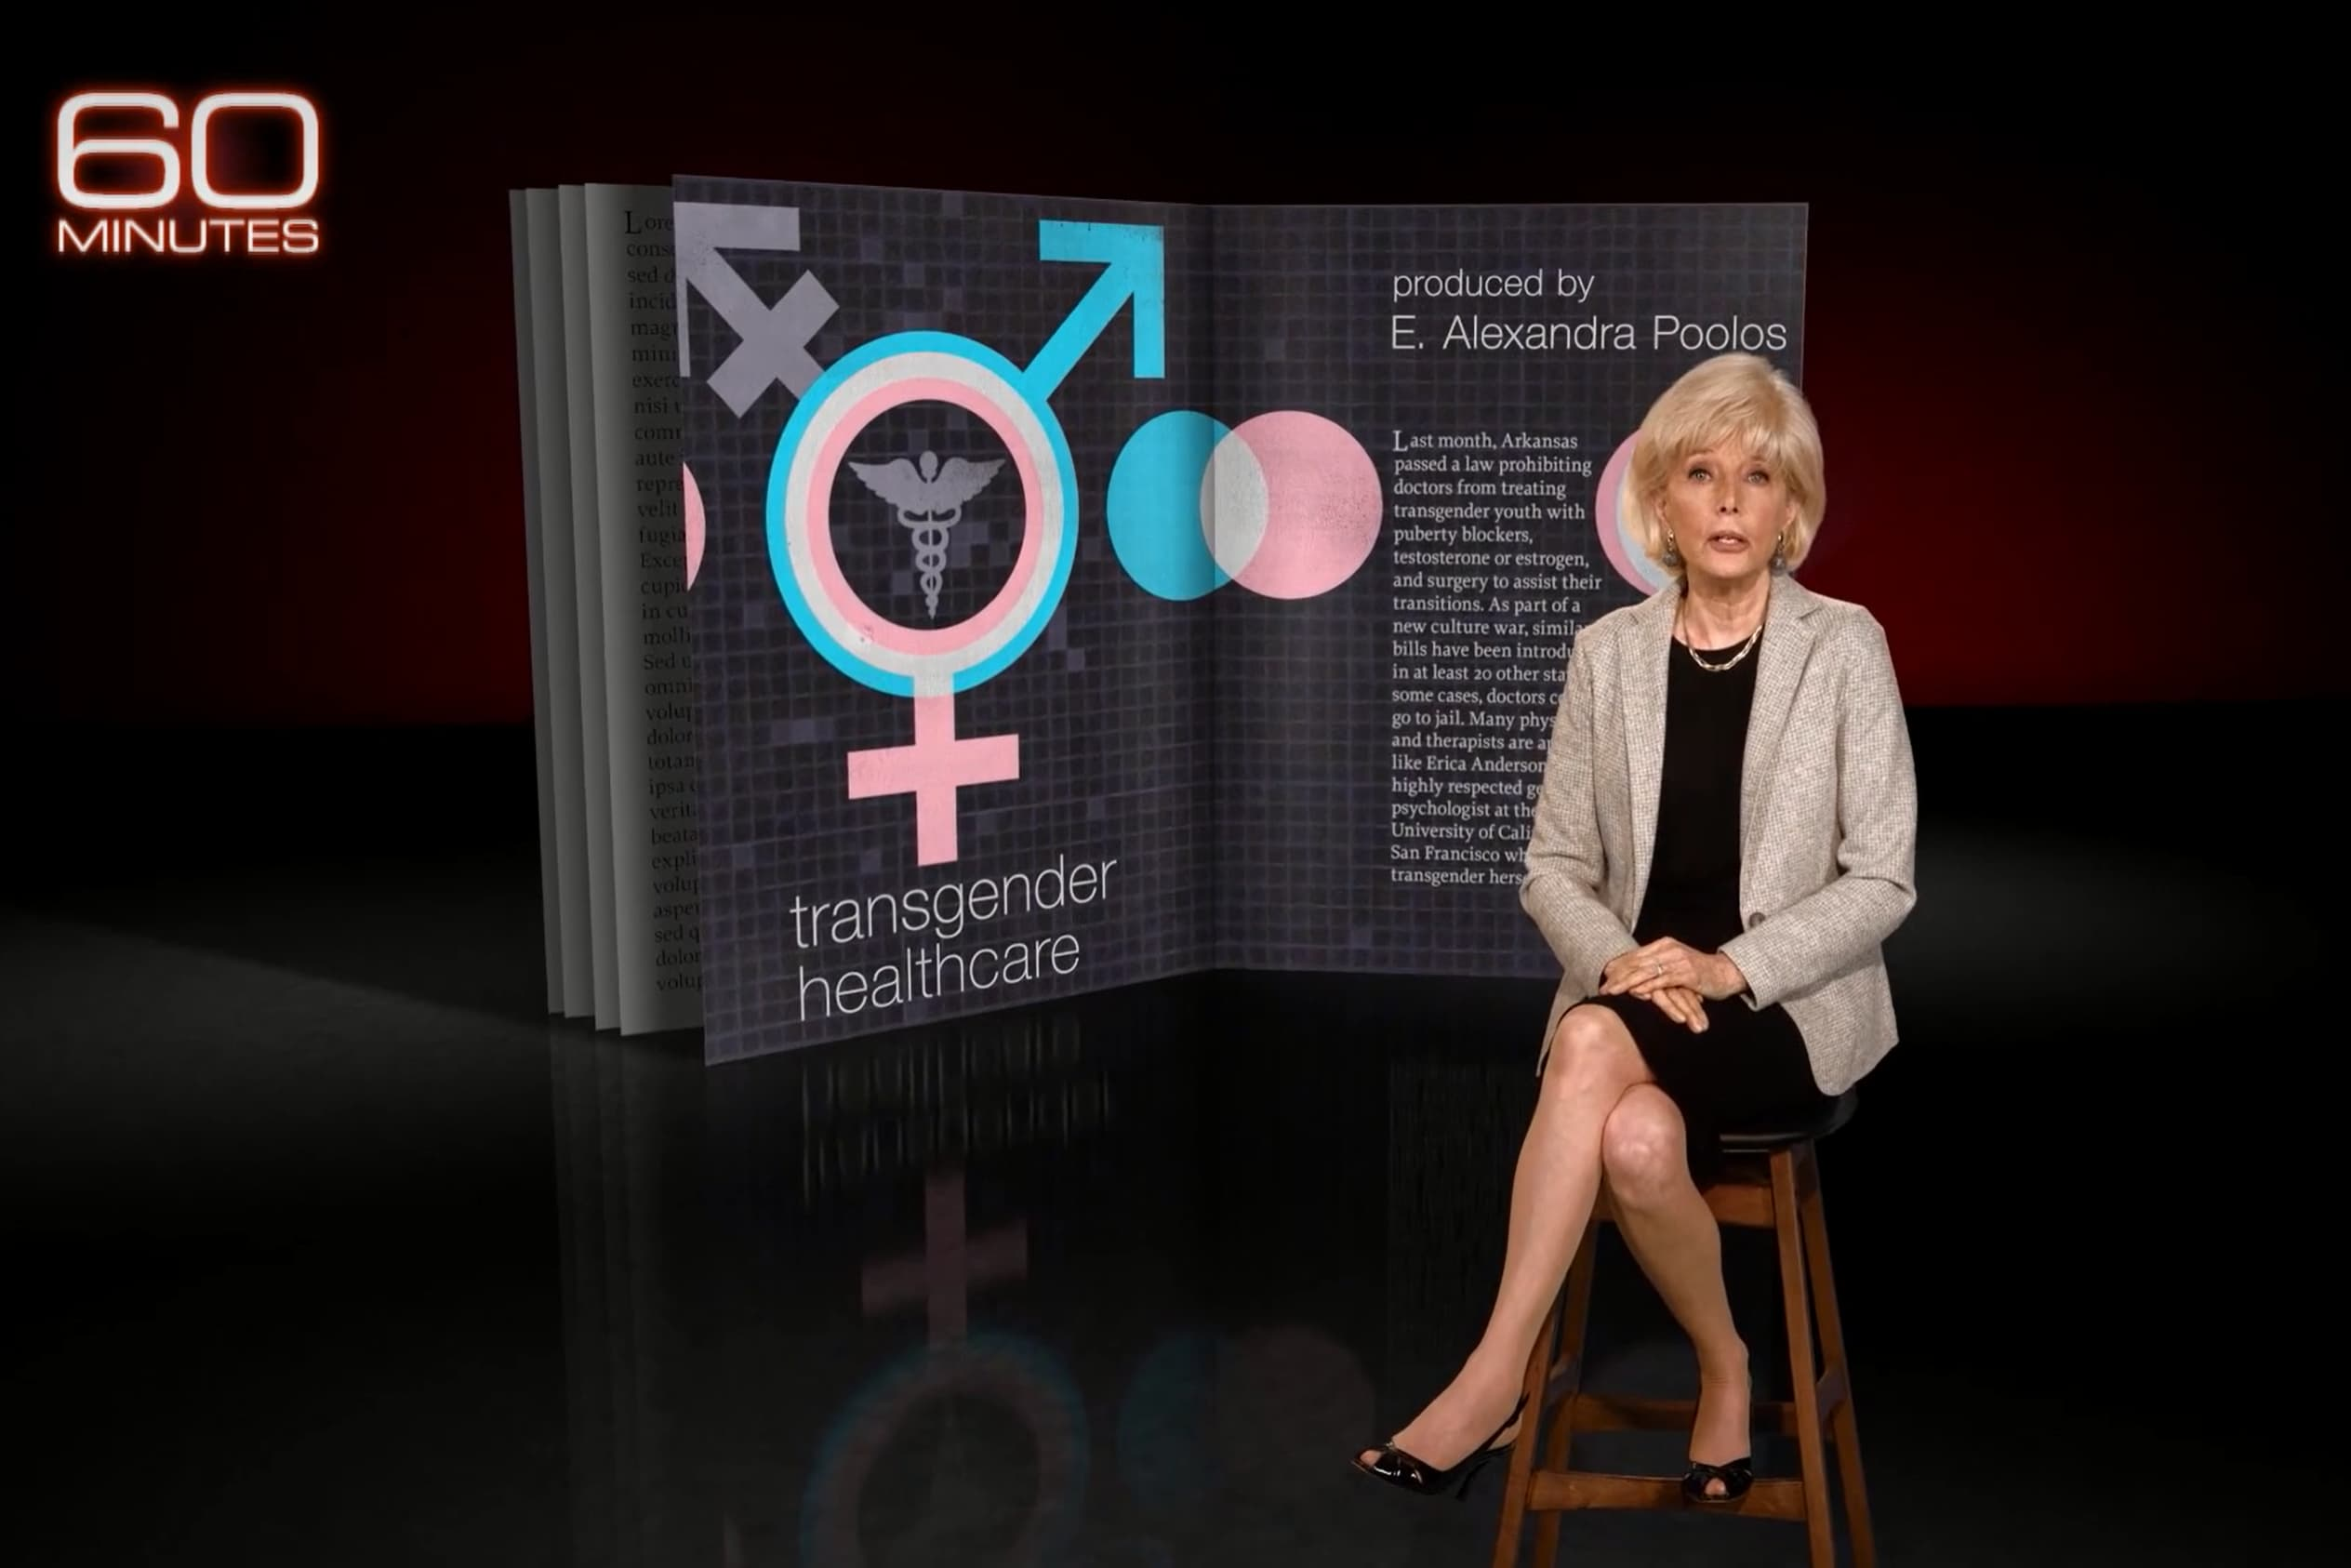 """<i>60 Minutes</i> Highlights Dangers of Affirming Gender Dysphoria and """"Transitioning"""" Too Quickly"""